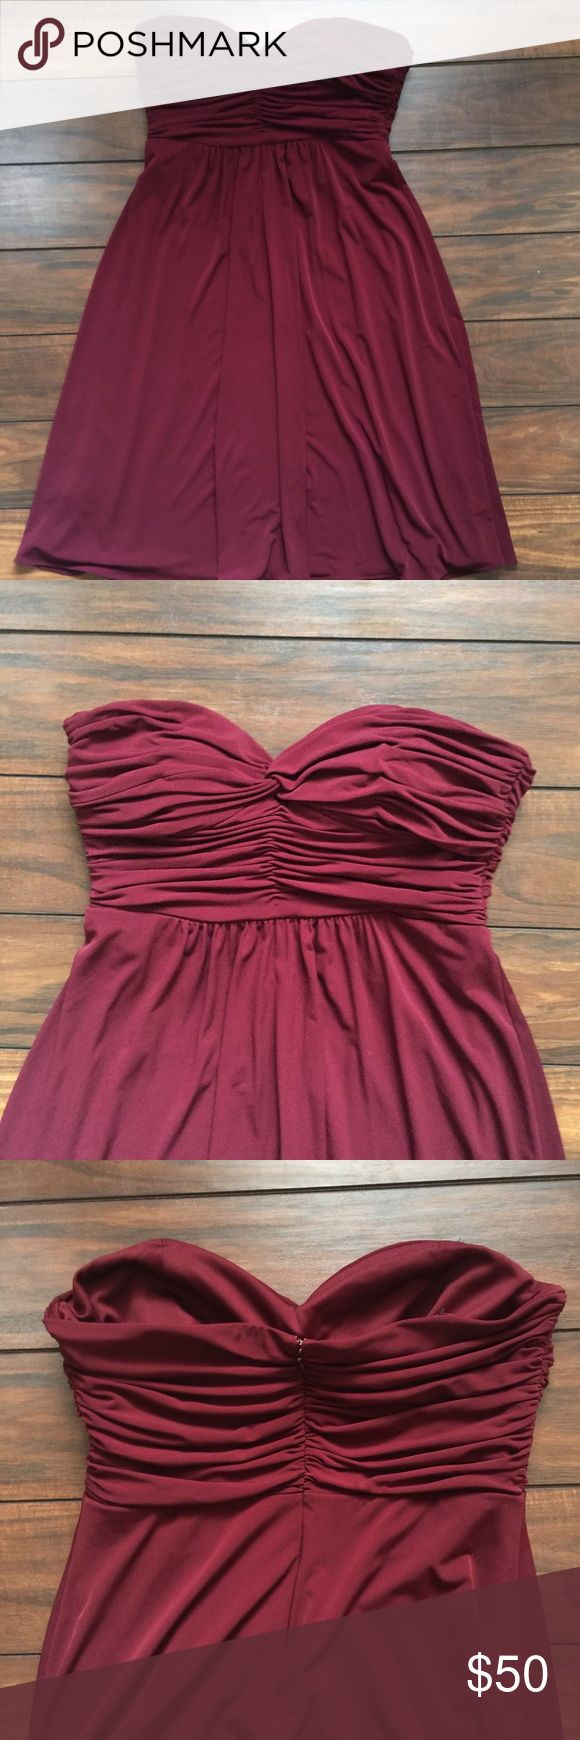 Burgundy Strapless Laundry by Shelli Segal Dress Beautiful burgundy dress. Like new condition. Fully lined. Laundry by Shelli Segal Dresses Strapless